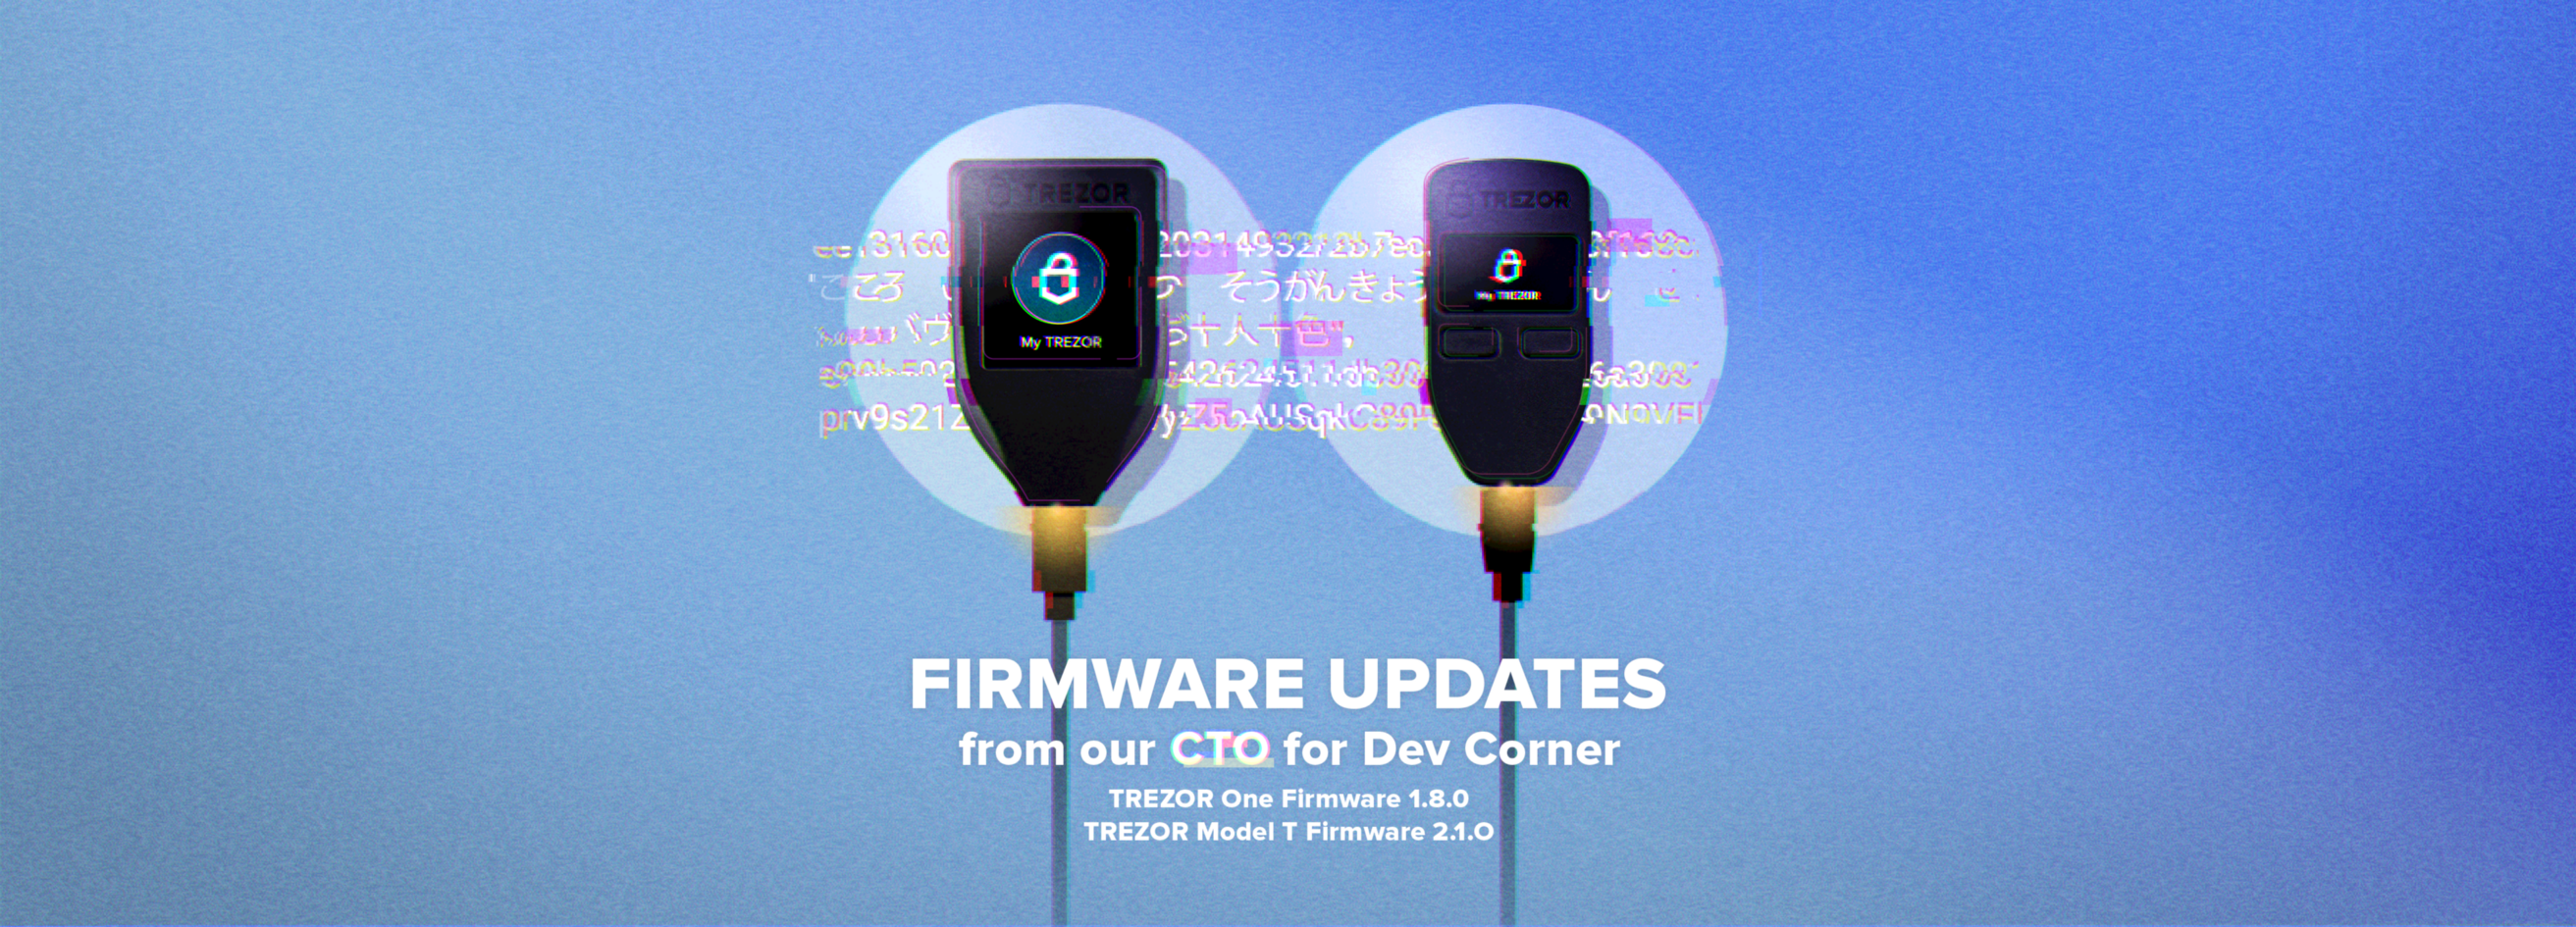 Details of Security Updates for Trezor One (Firmware 1 8 0) and